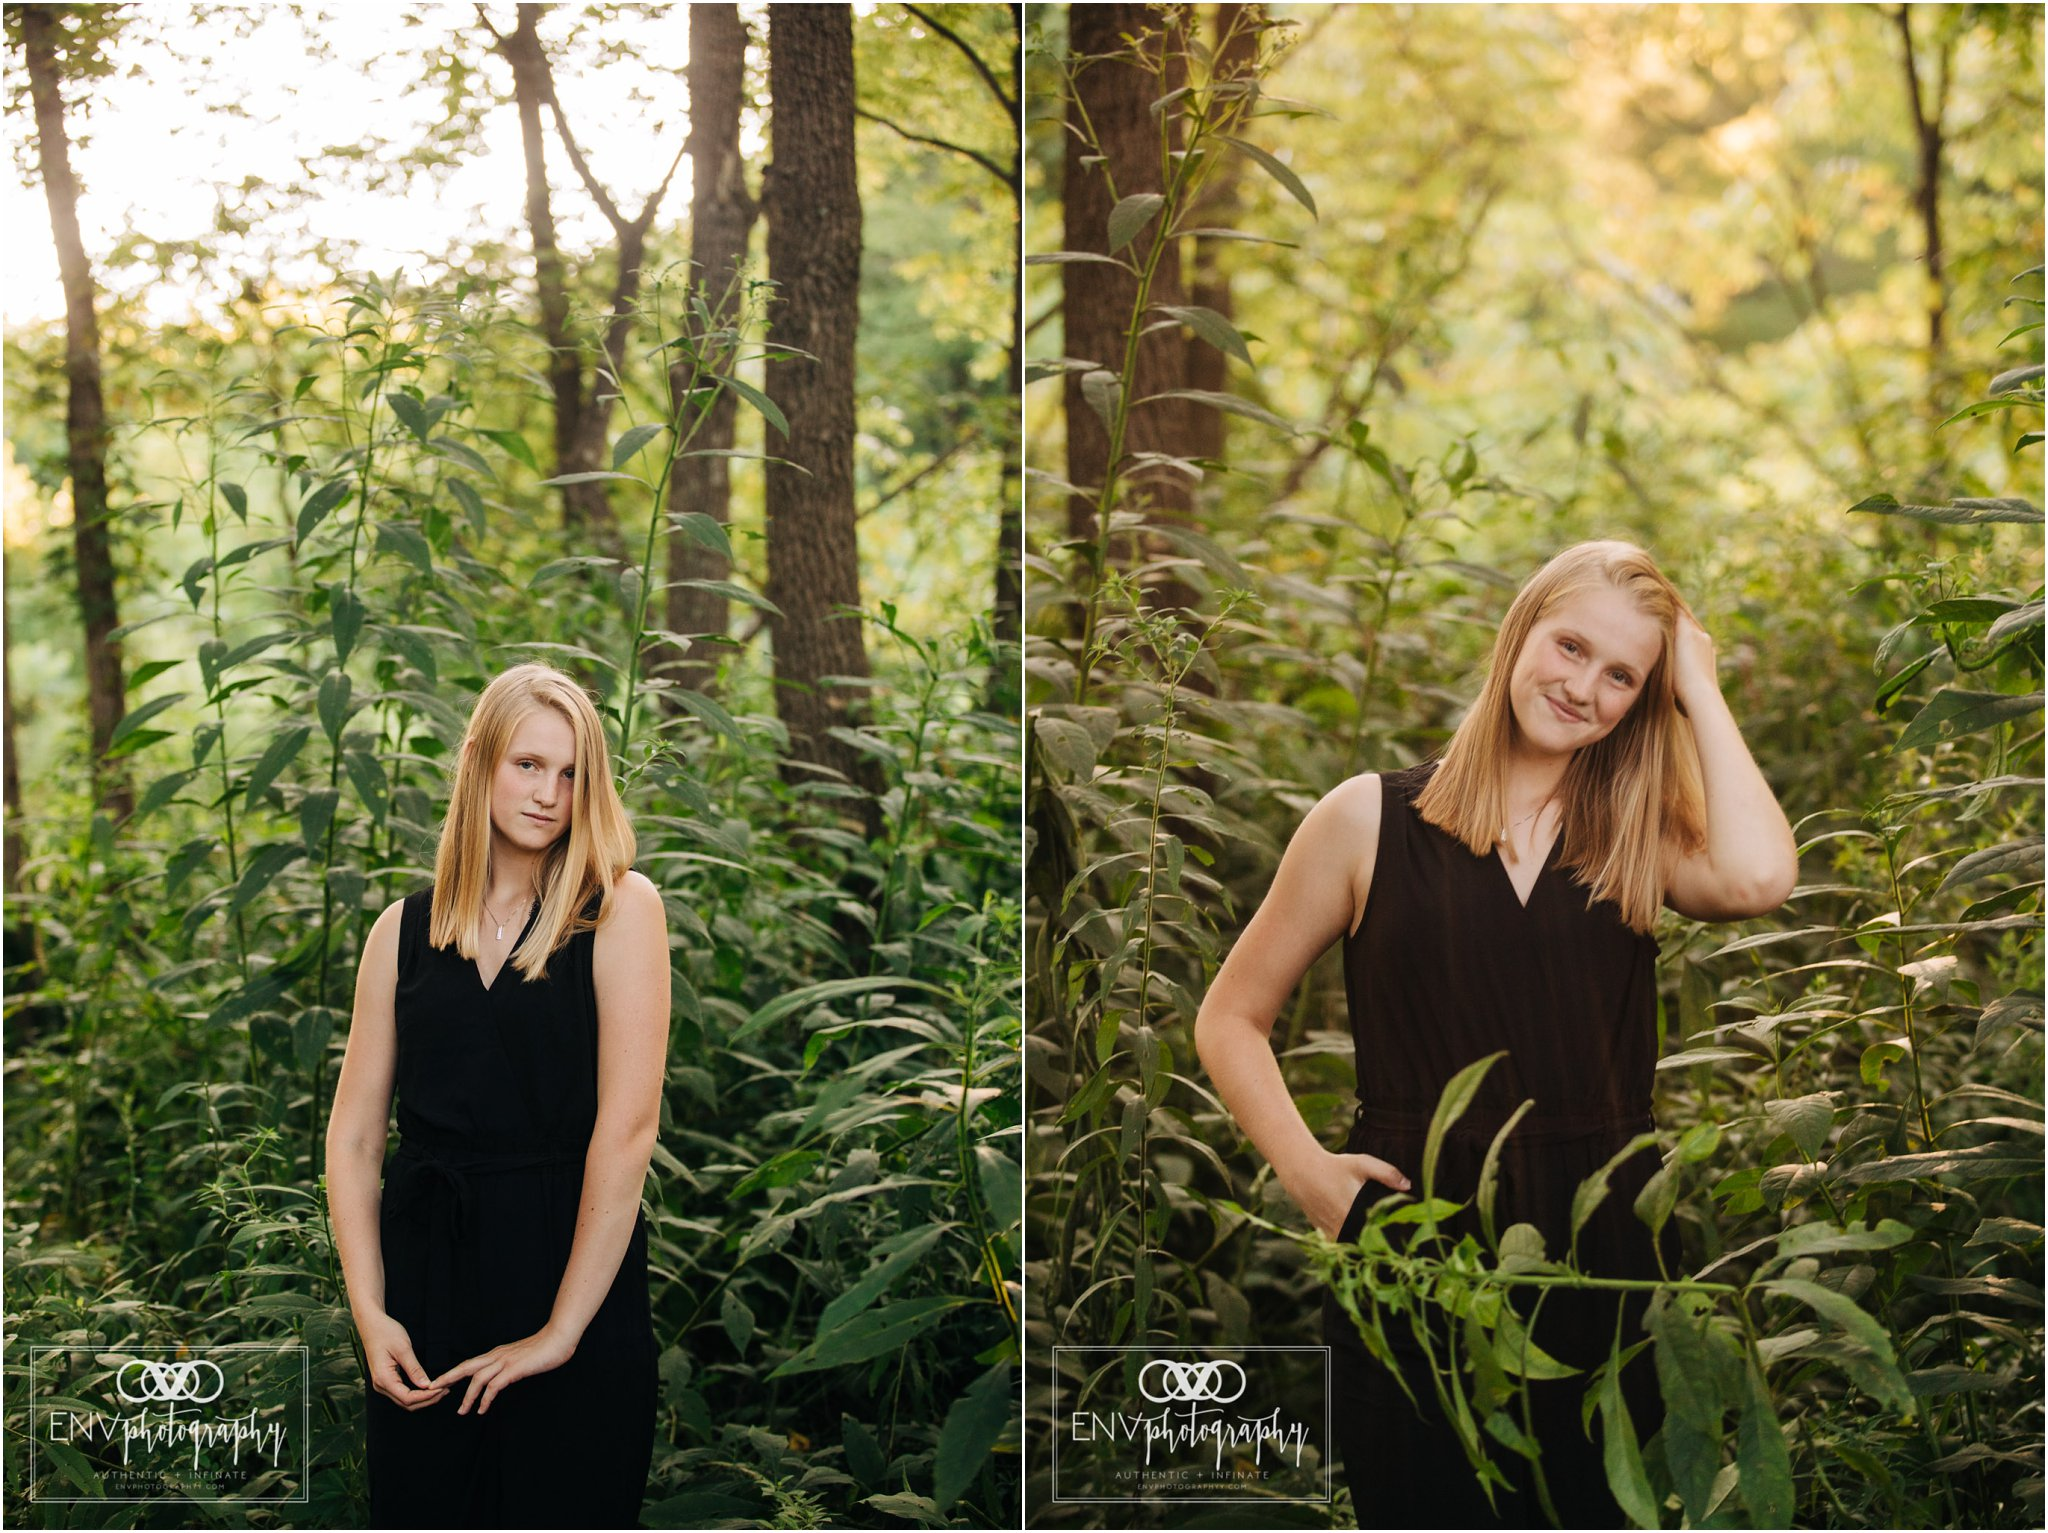 Mount vernon Columbus OHio high school senior photographer (12).jpg